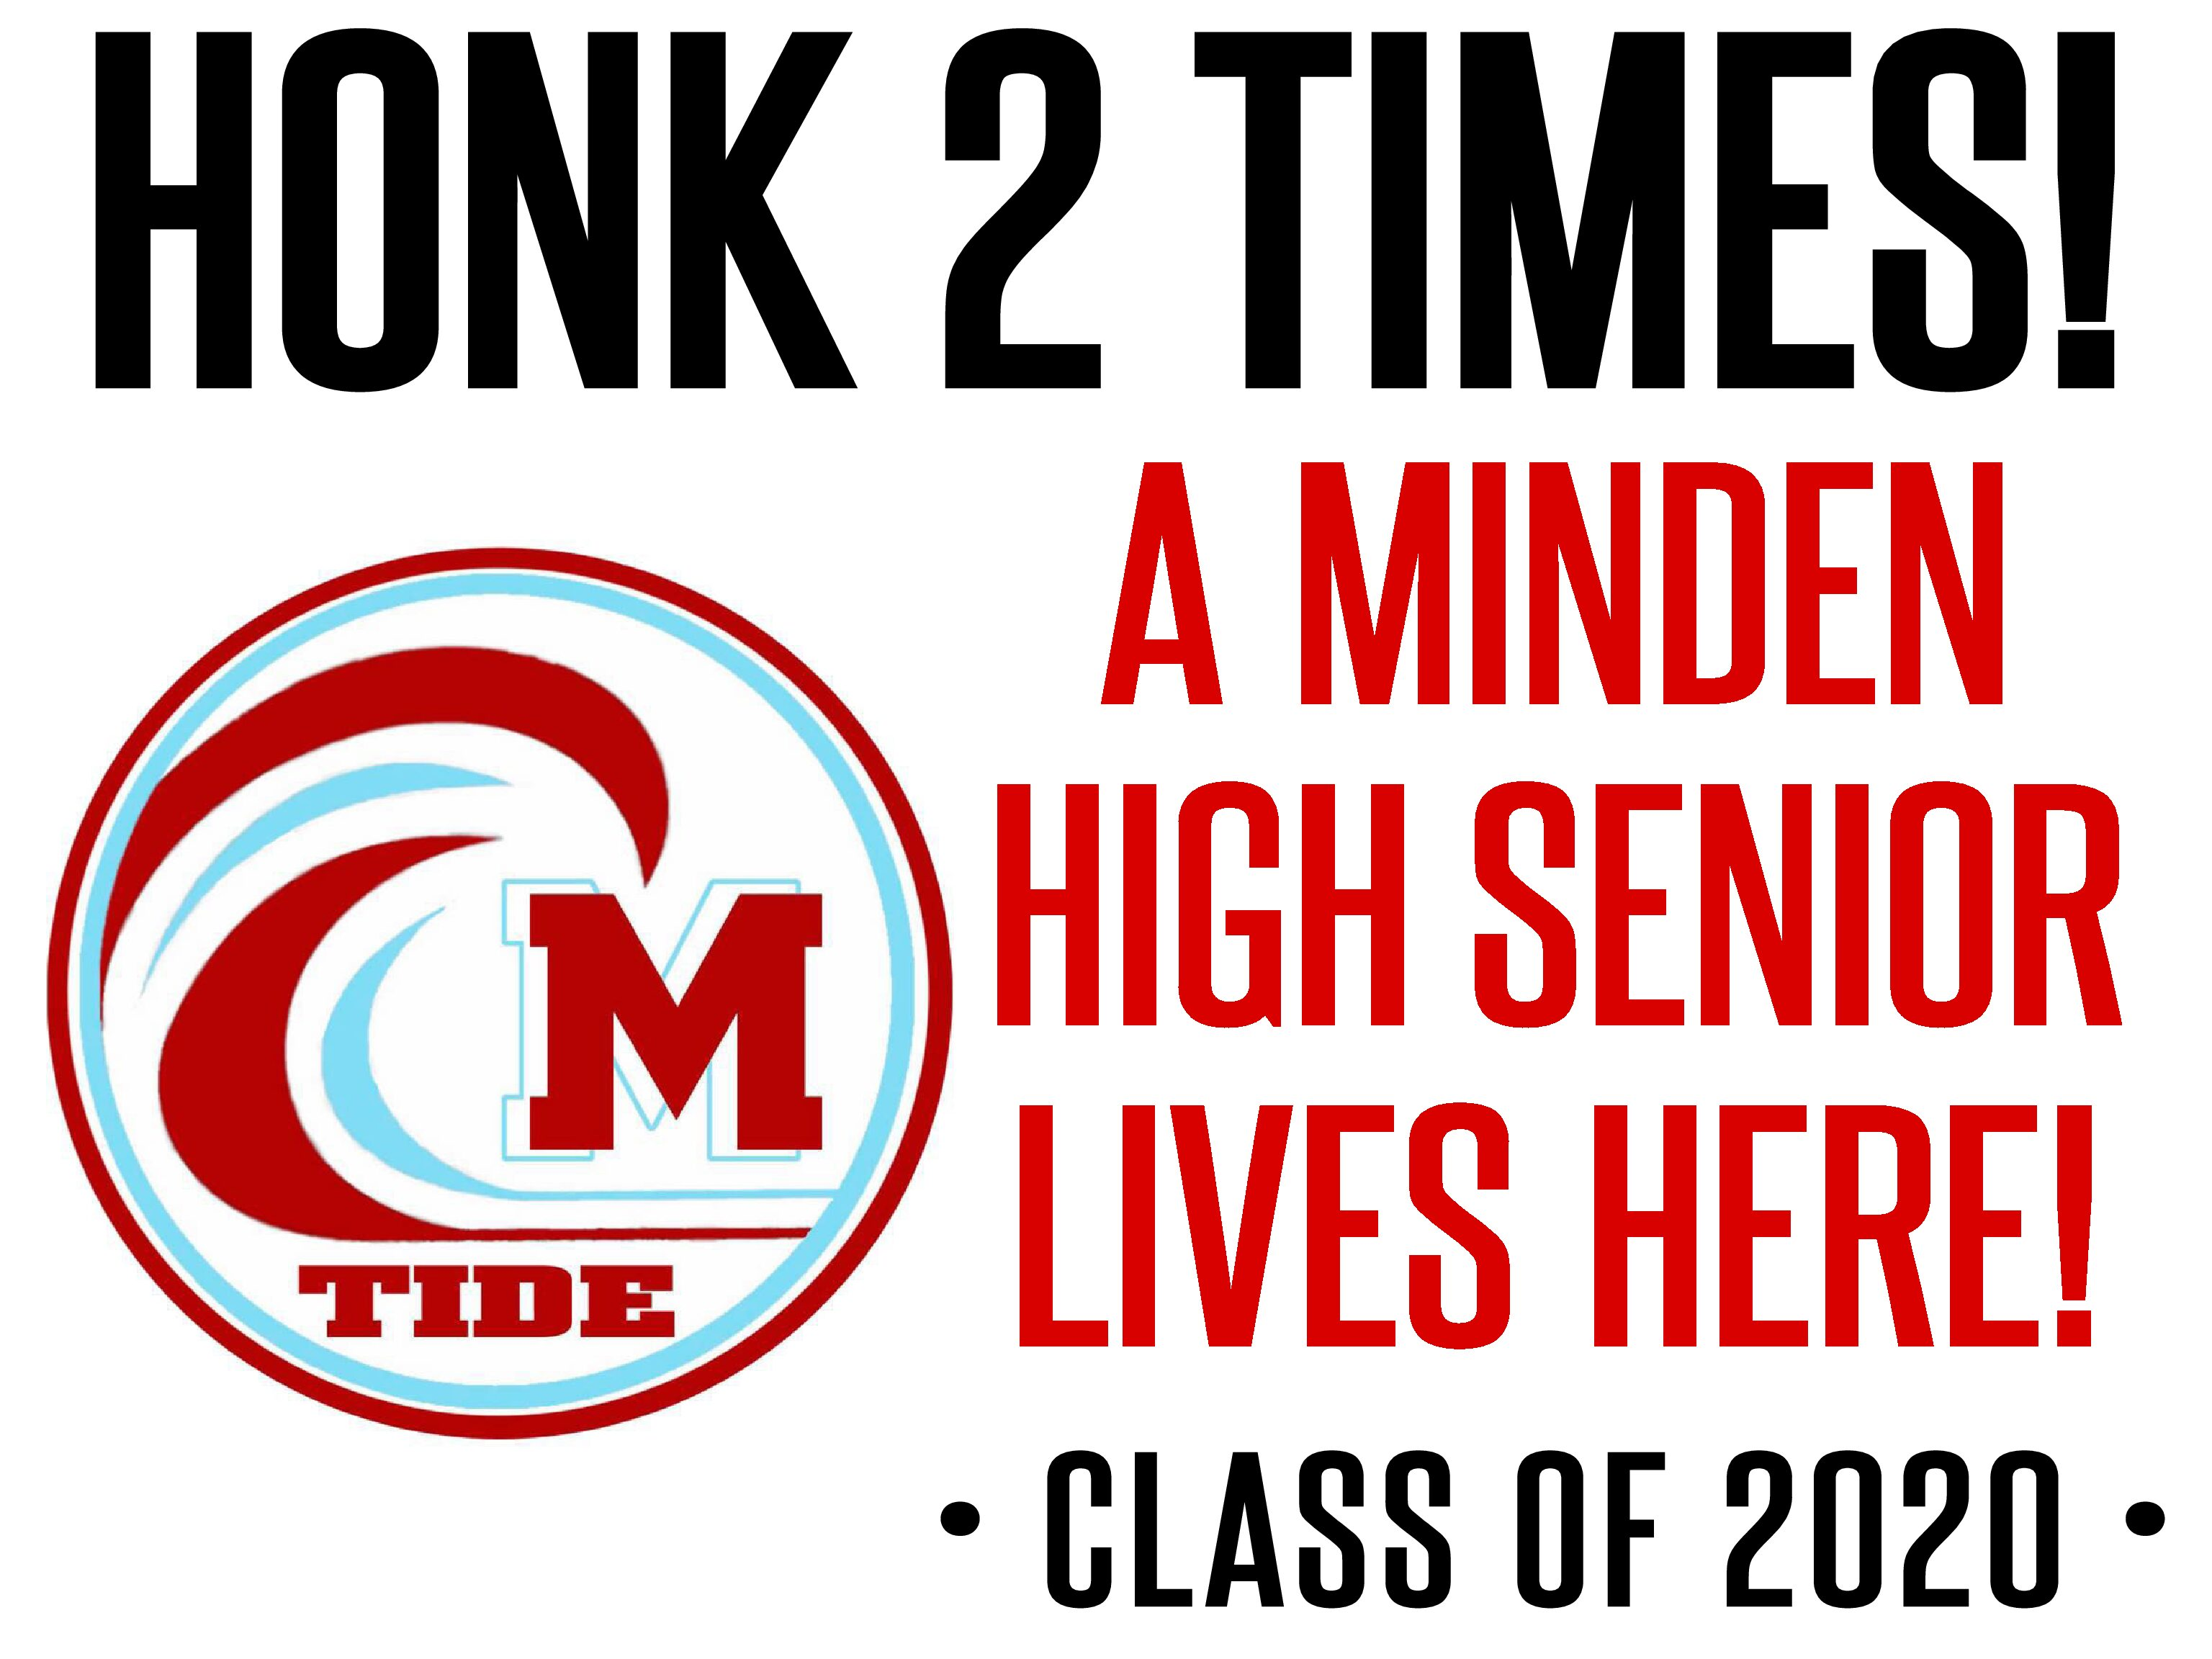 Minden High Senior Yard Signs